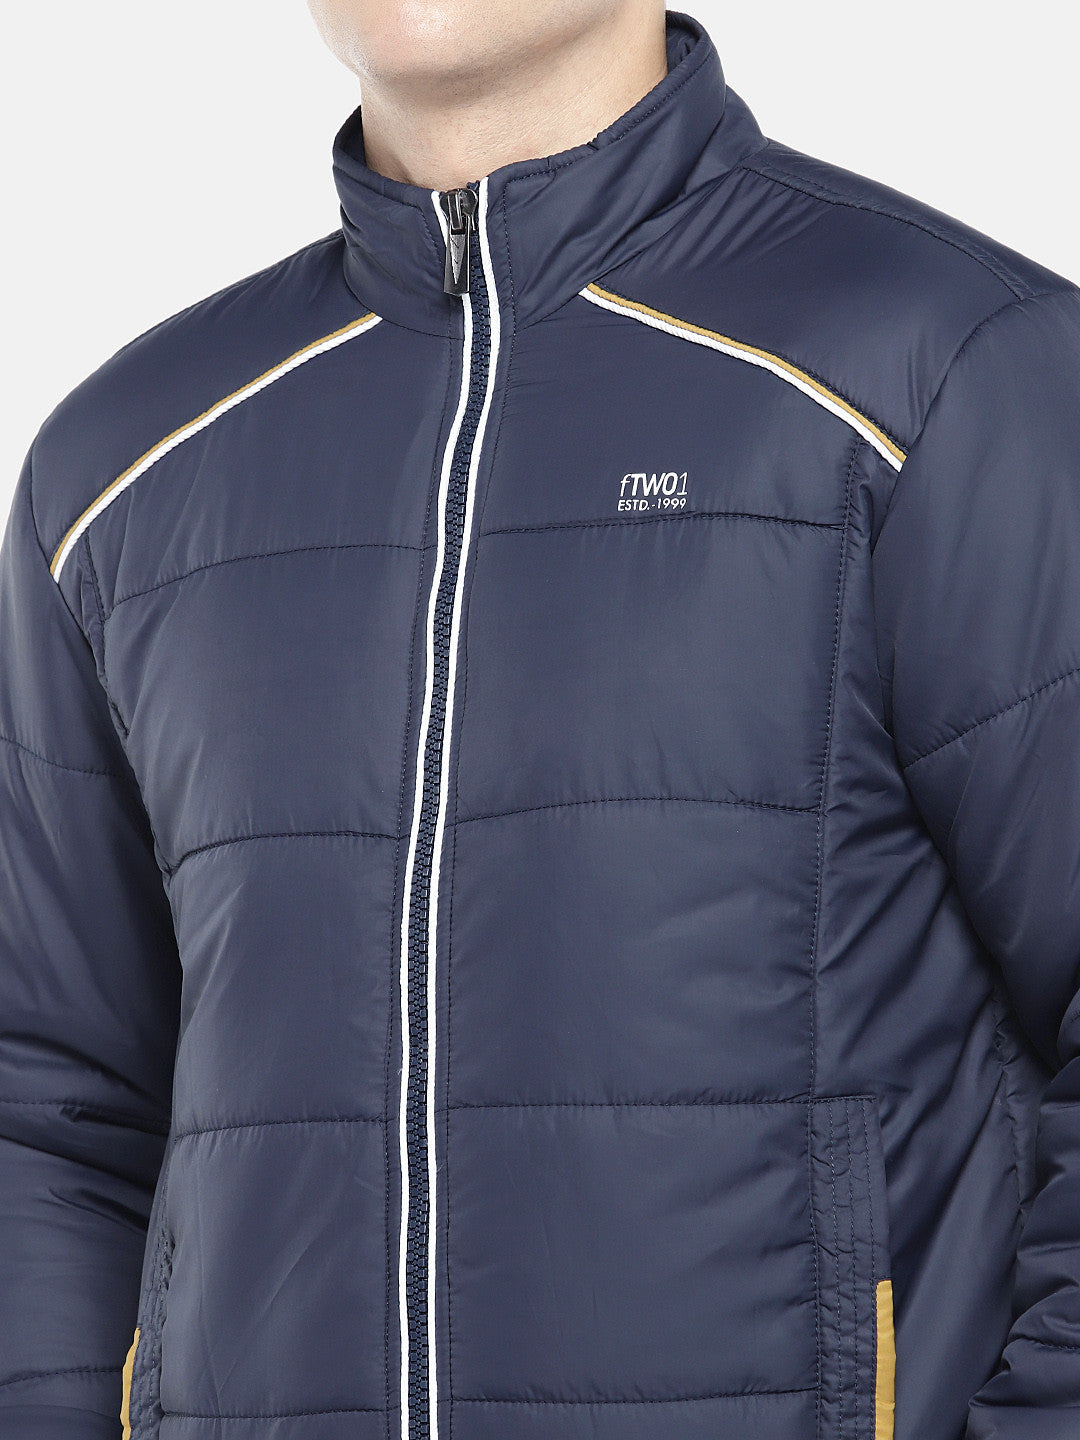 Navy Blue Solid Padded Jacket-5